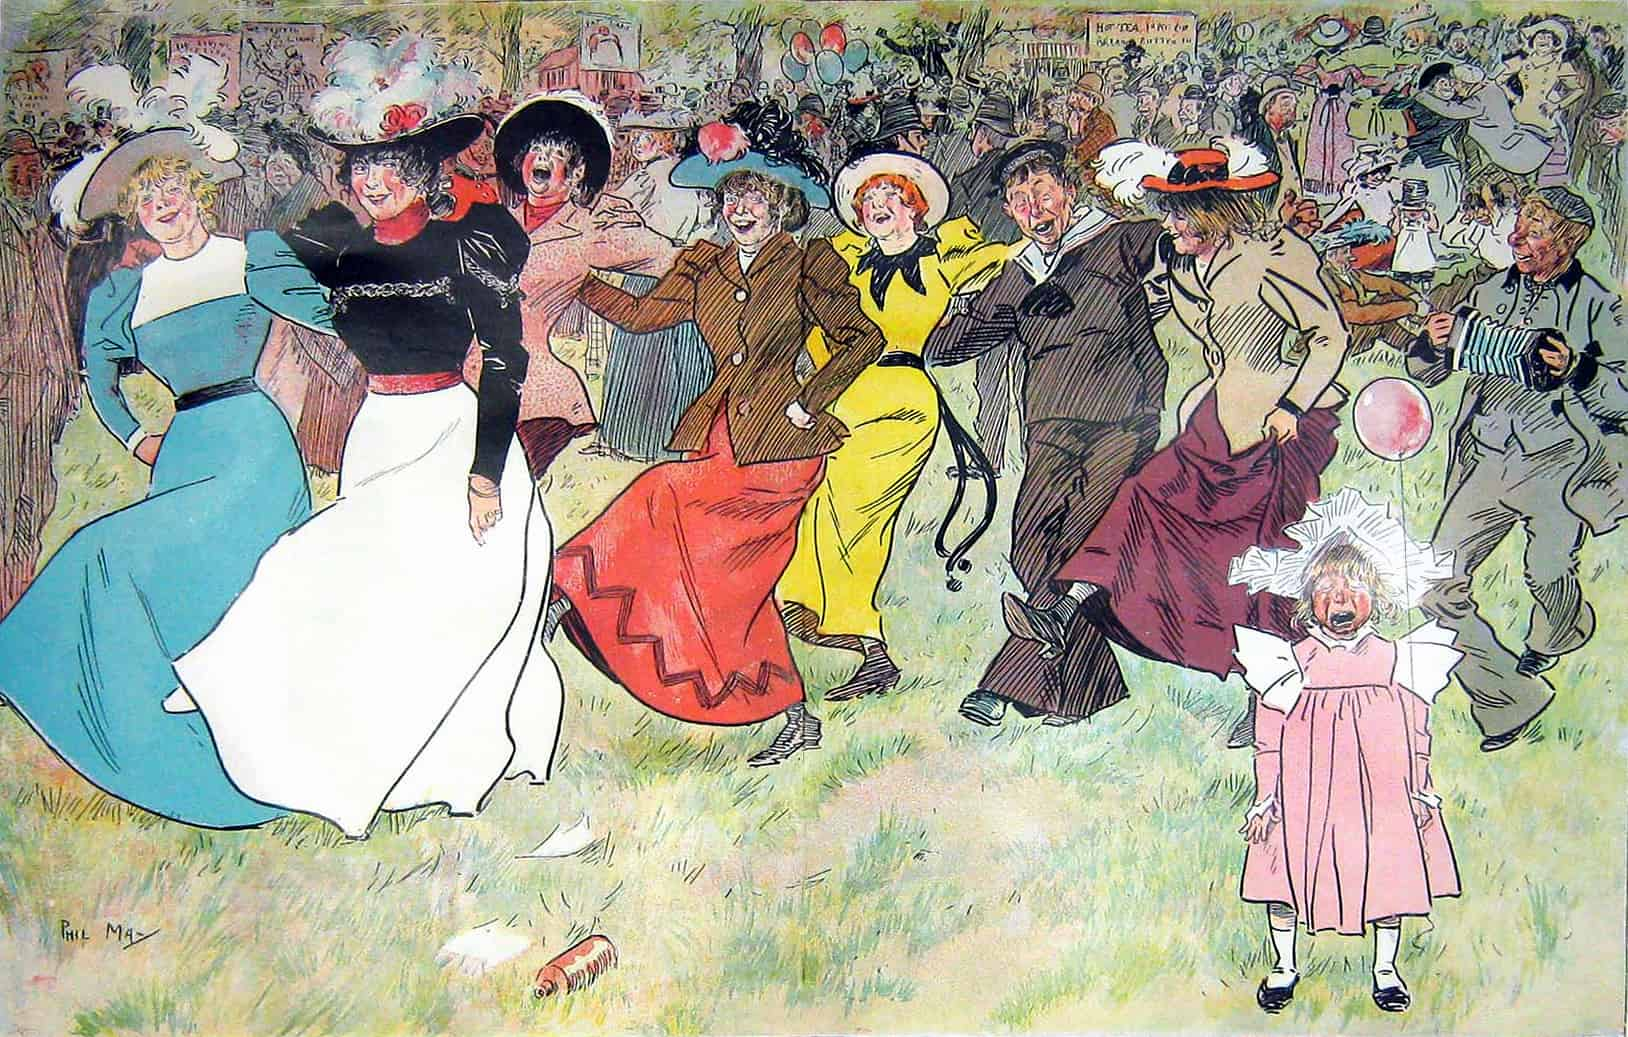 Cockney Carnival in 'Appy 'Ampstead  by Punch cartoonist Phil May (1864-1903)